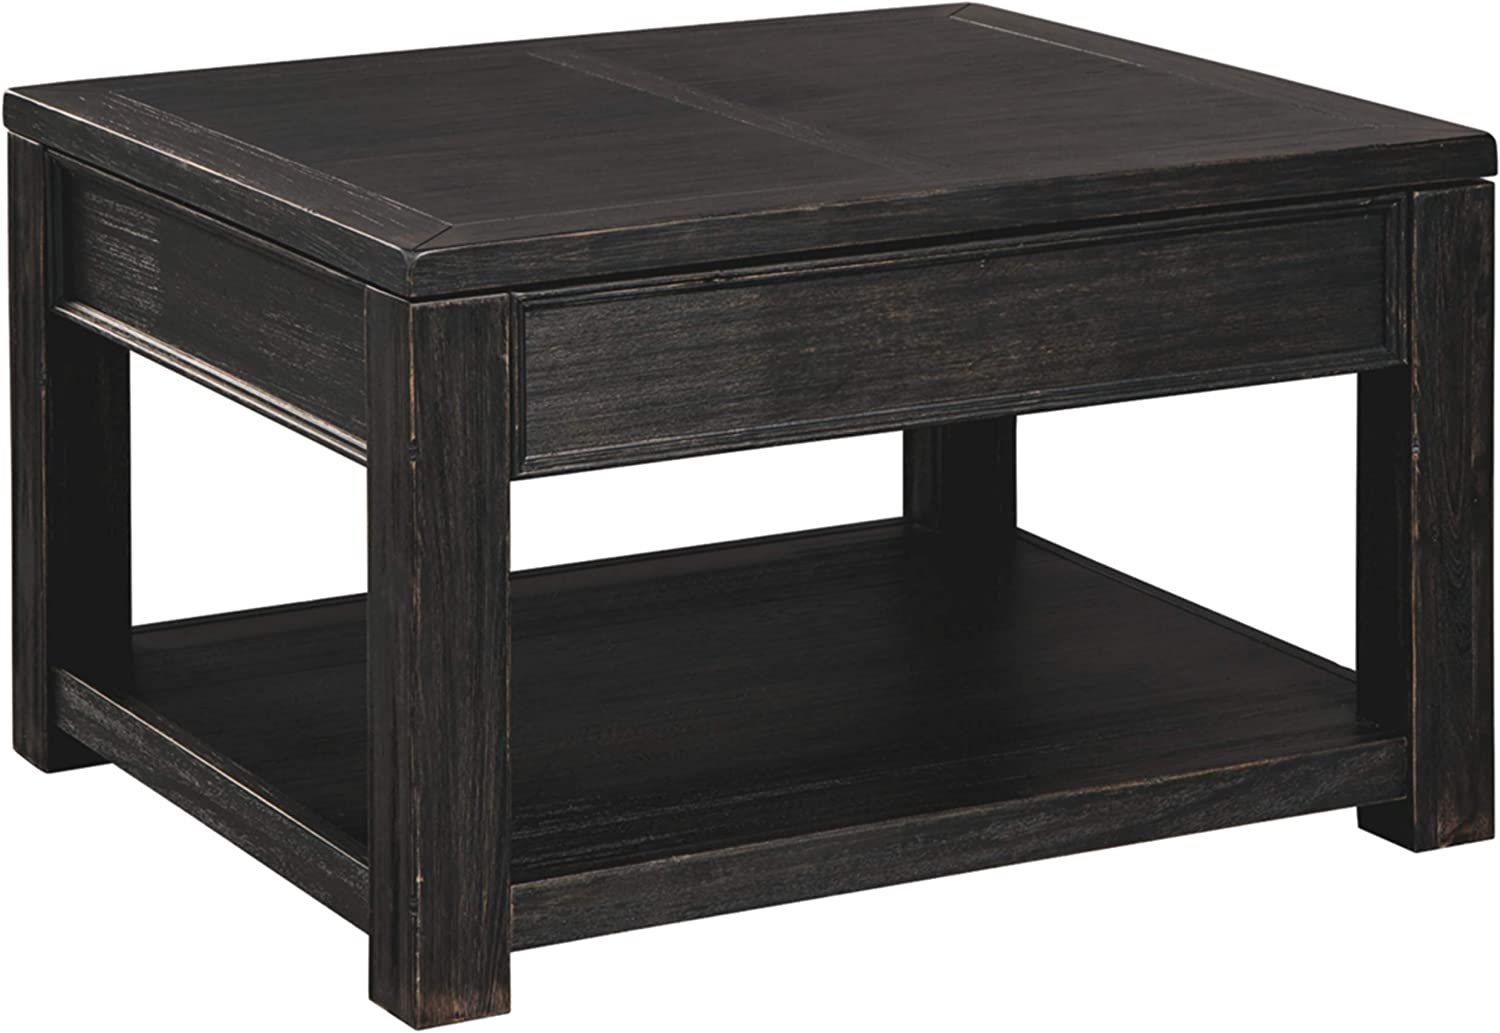 Signature Design by Ashley - Gavelston Lift-Top Cocktail Table w/ Fixed Shelf, Rubbed Black Finish